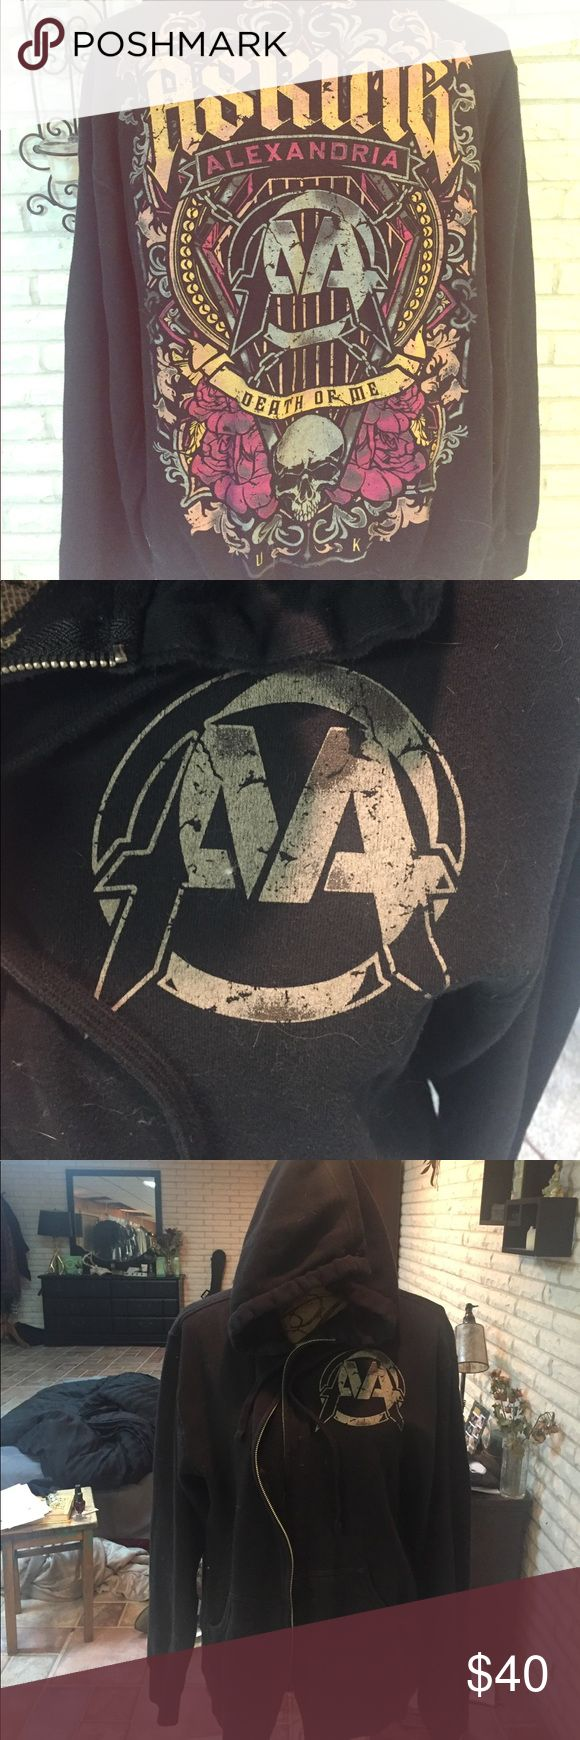 Asking Alexandria zip up. Gift to me from Worsnop When I first became friends with asking Alexandria the first time I met them, Danny Worsnop gave me his sweatshirt when they were on tour in the US for the first time. It's just time to pass this one on to the next AA family member. asking alexandria Sweaters